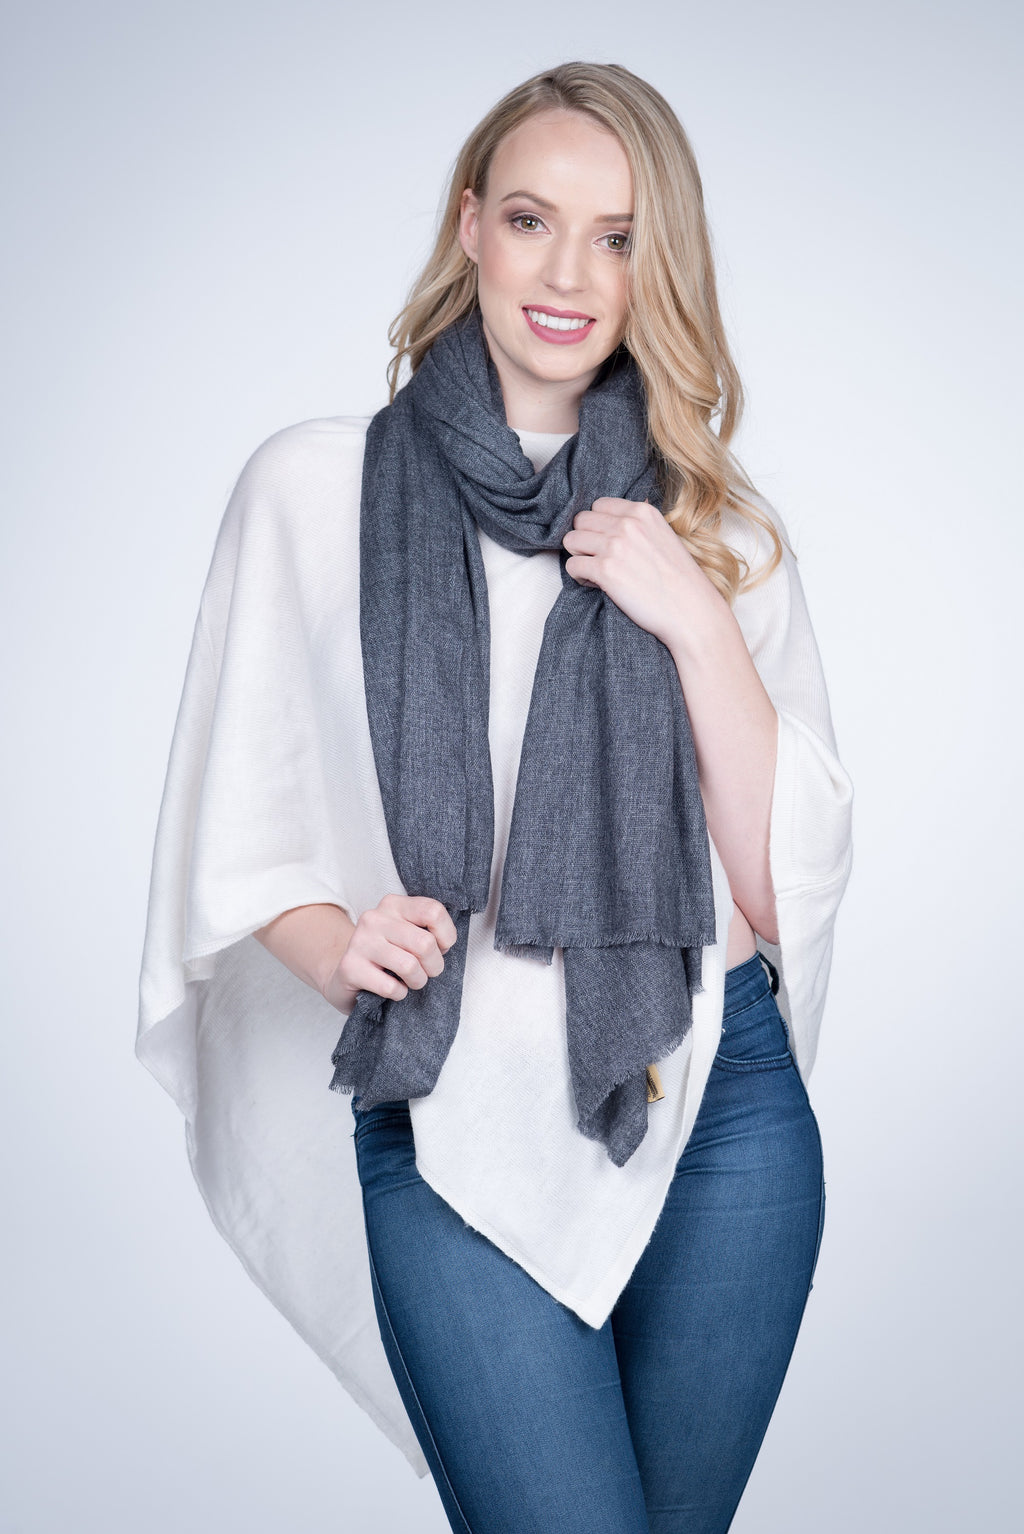 Nine Yaks - Natural Cashmere Shawl - Charcoal - last minute gift idea - melbourne